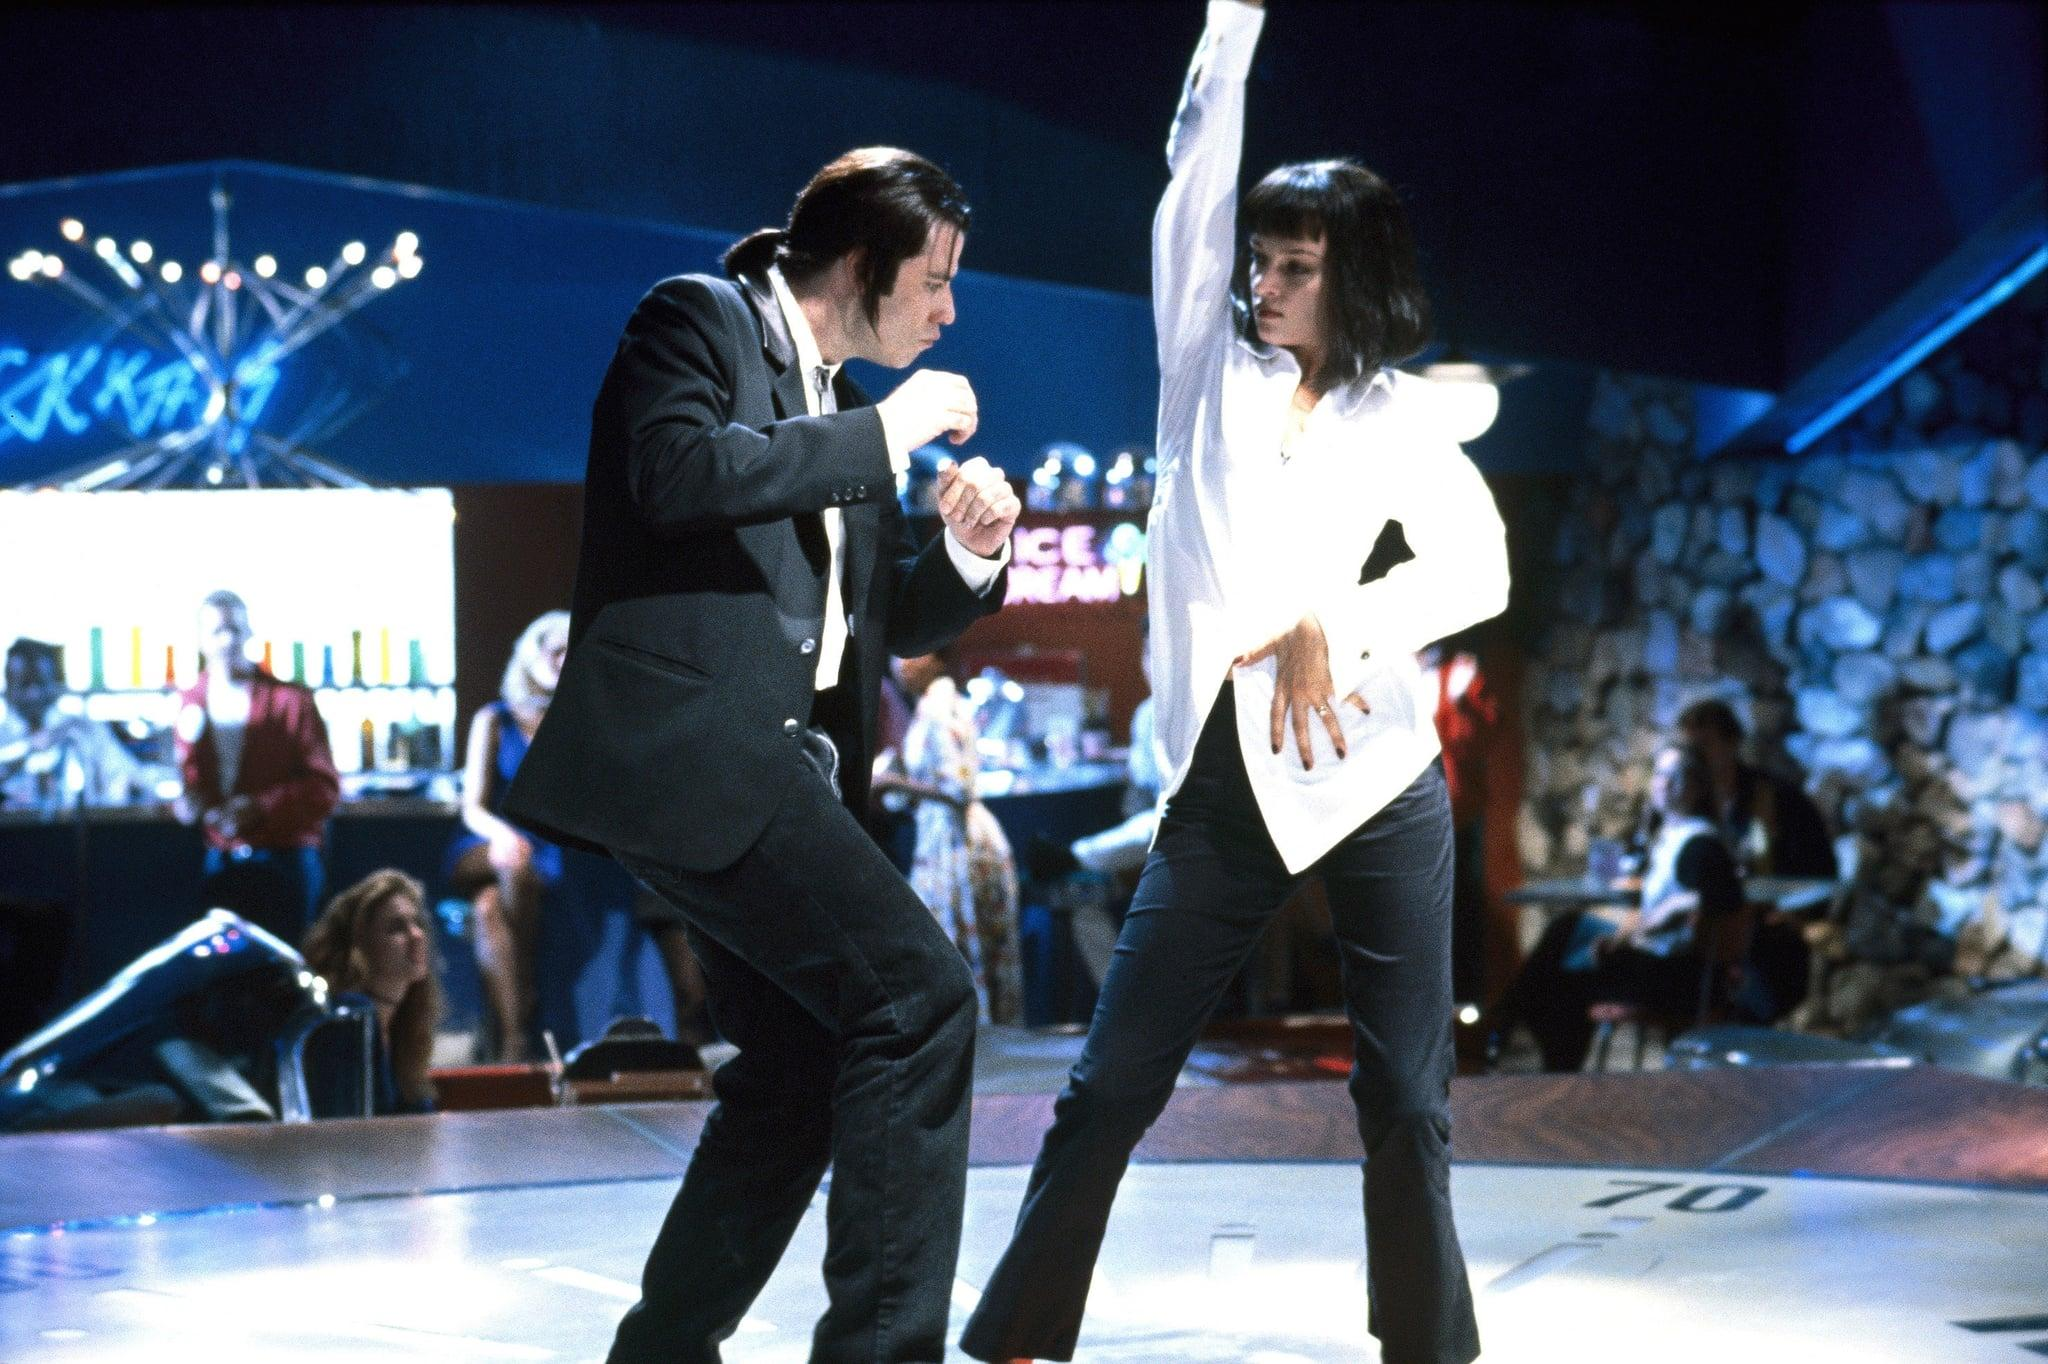 'Pulp Fiction' at 25: Maria McKee reveals how Quentin Tarantino, Johnny Depp and luck landed her on movie's hit soundtrack